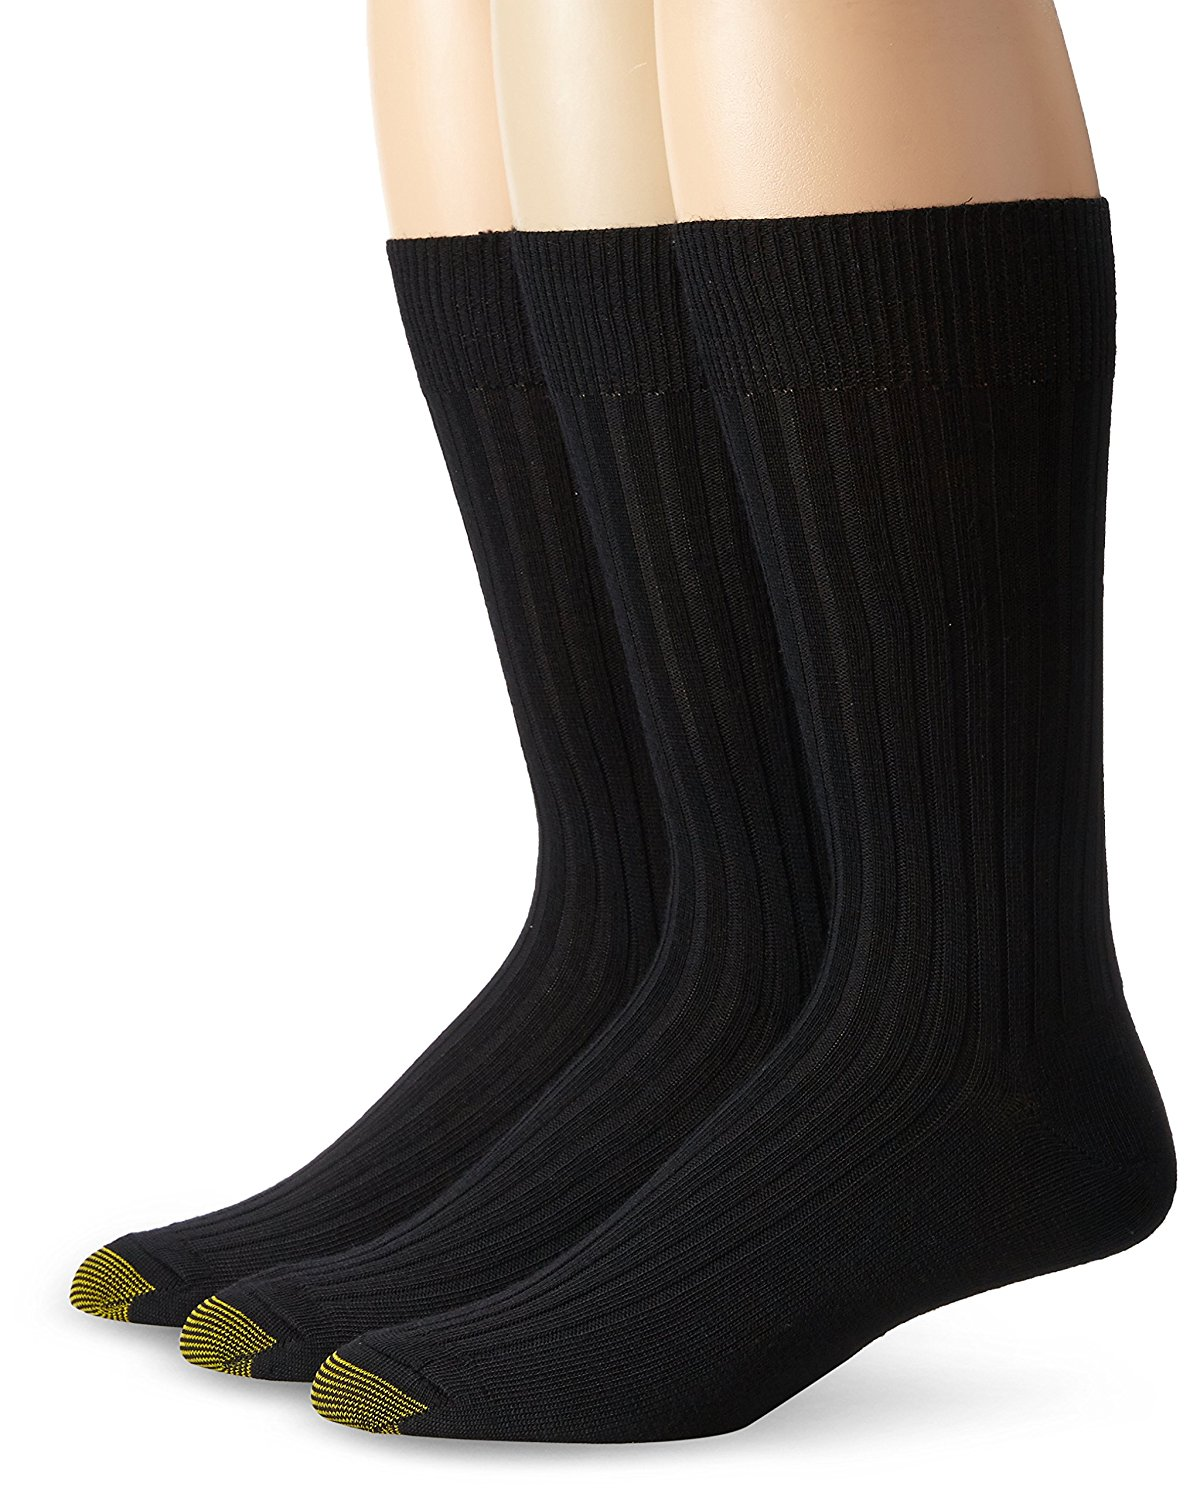 450dd3fe5 Get Quotations · Gold Toe Men s 3-Pack Windsor Wool Dress Sock